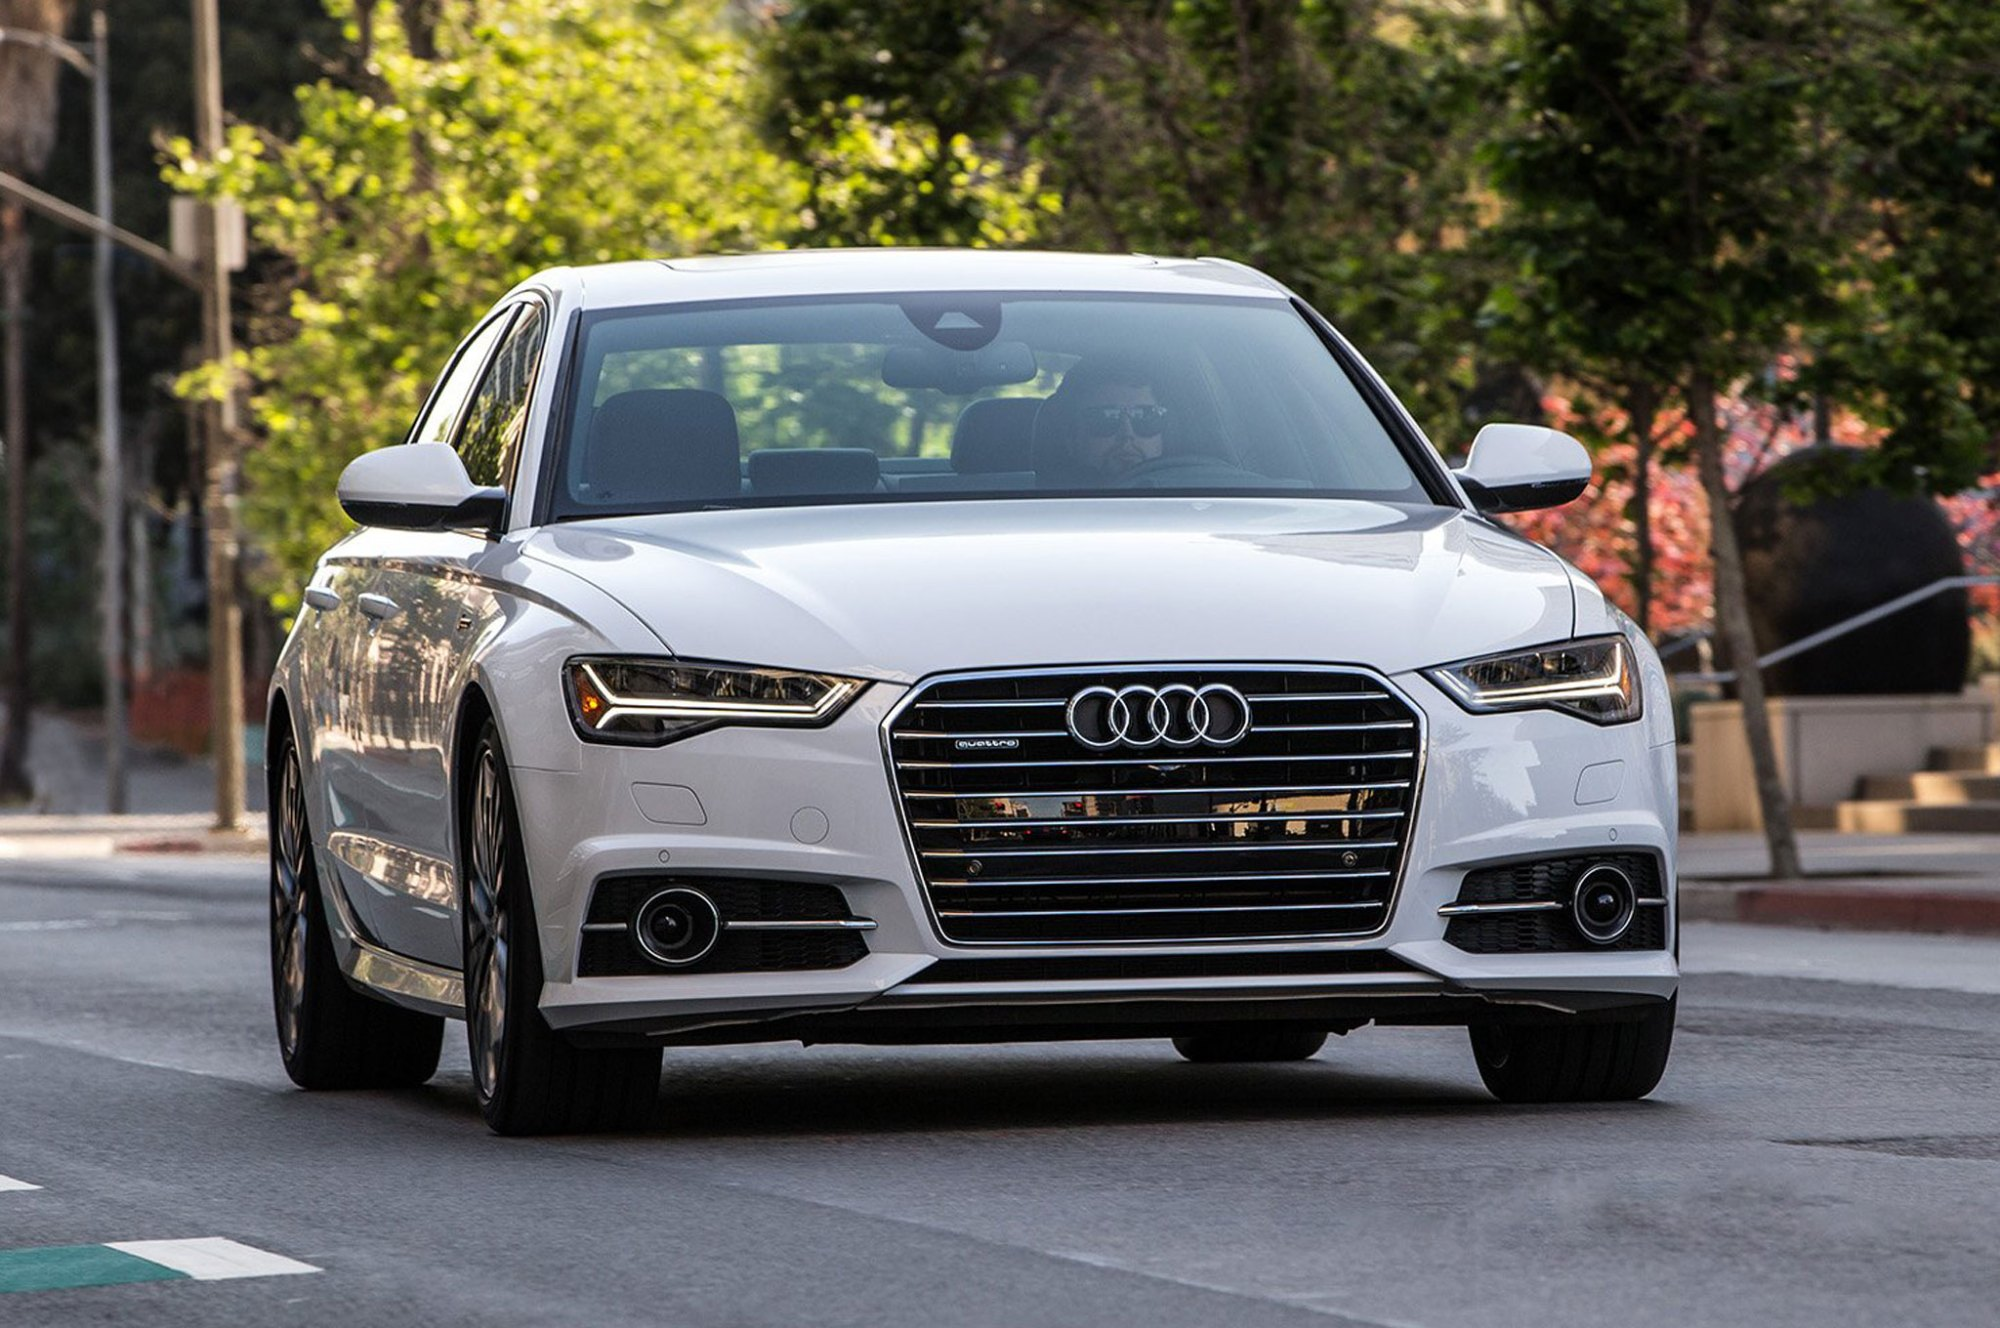 hight resolution of 2016 audi a6 3 0t front view in motion